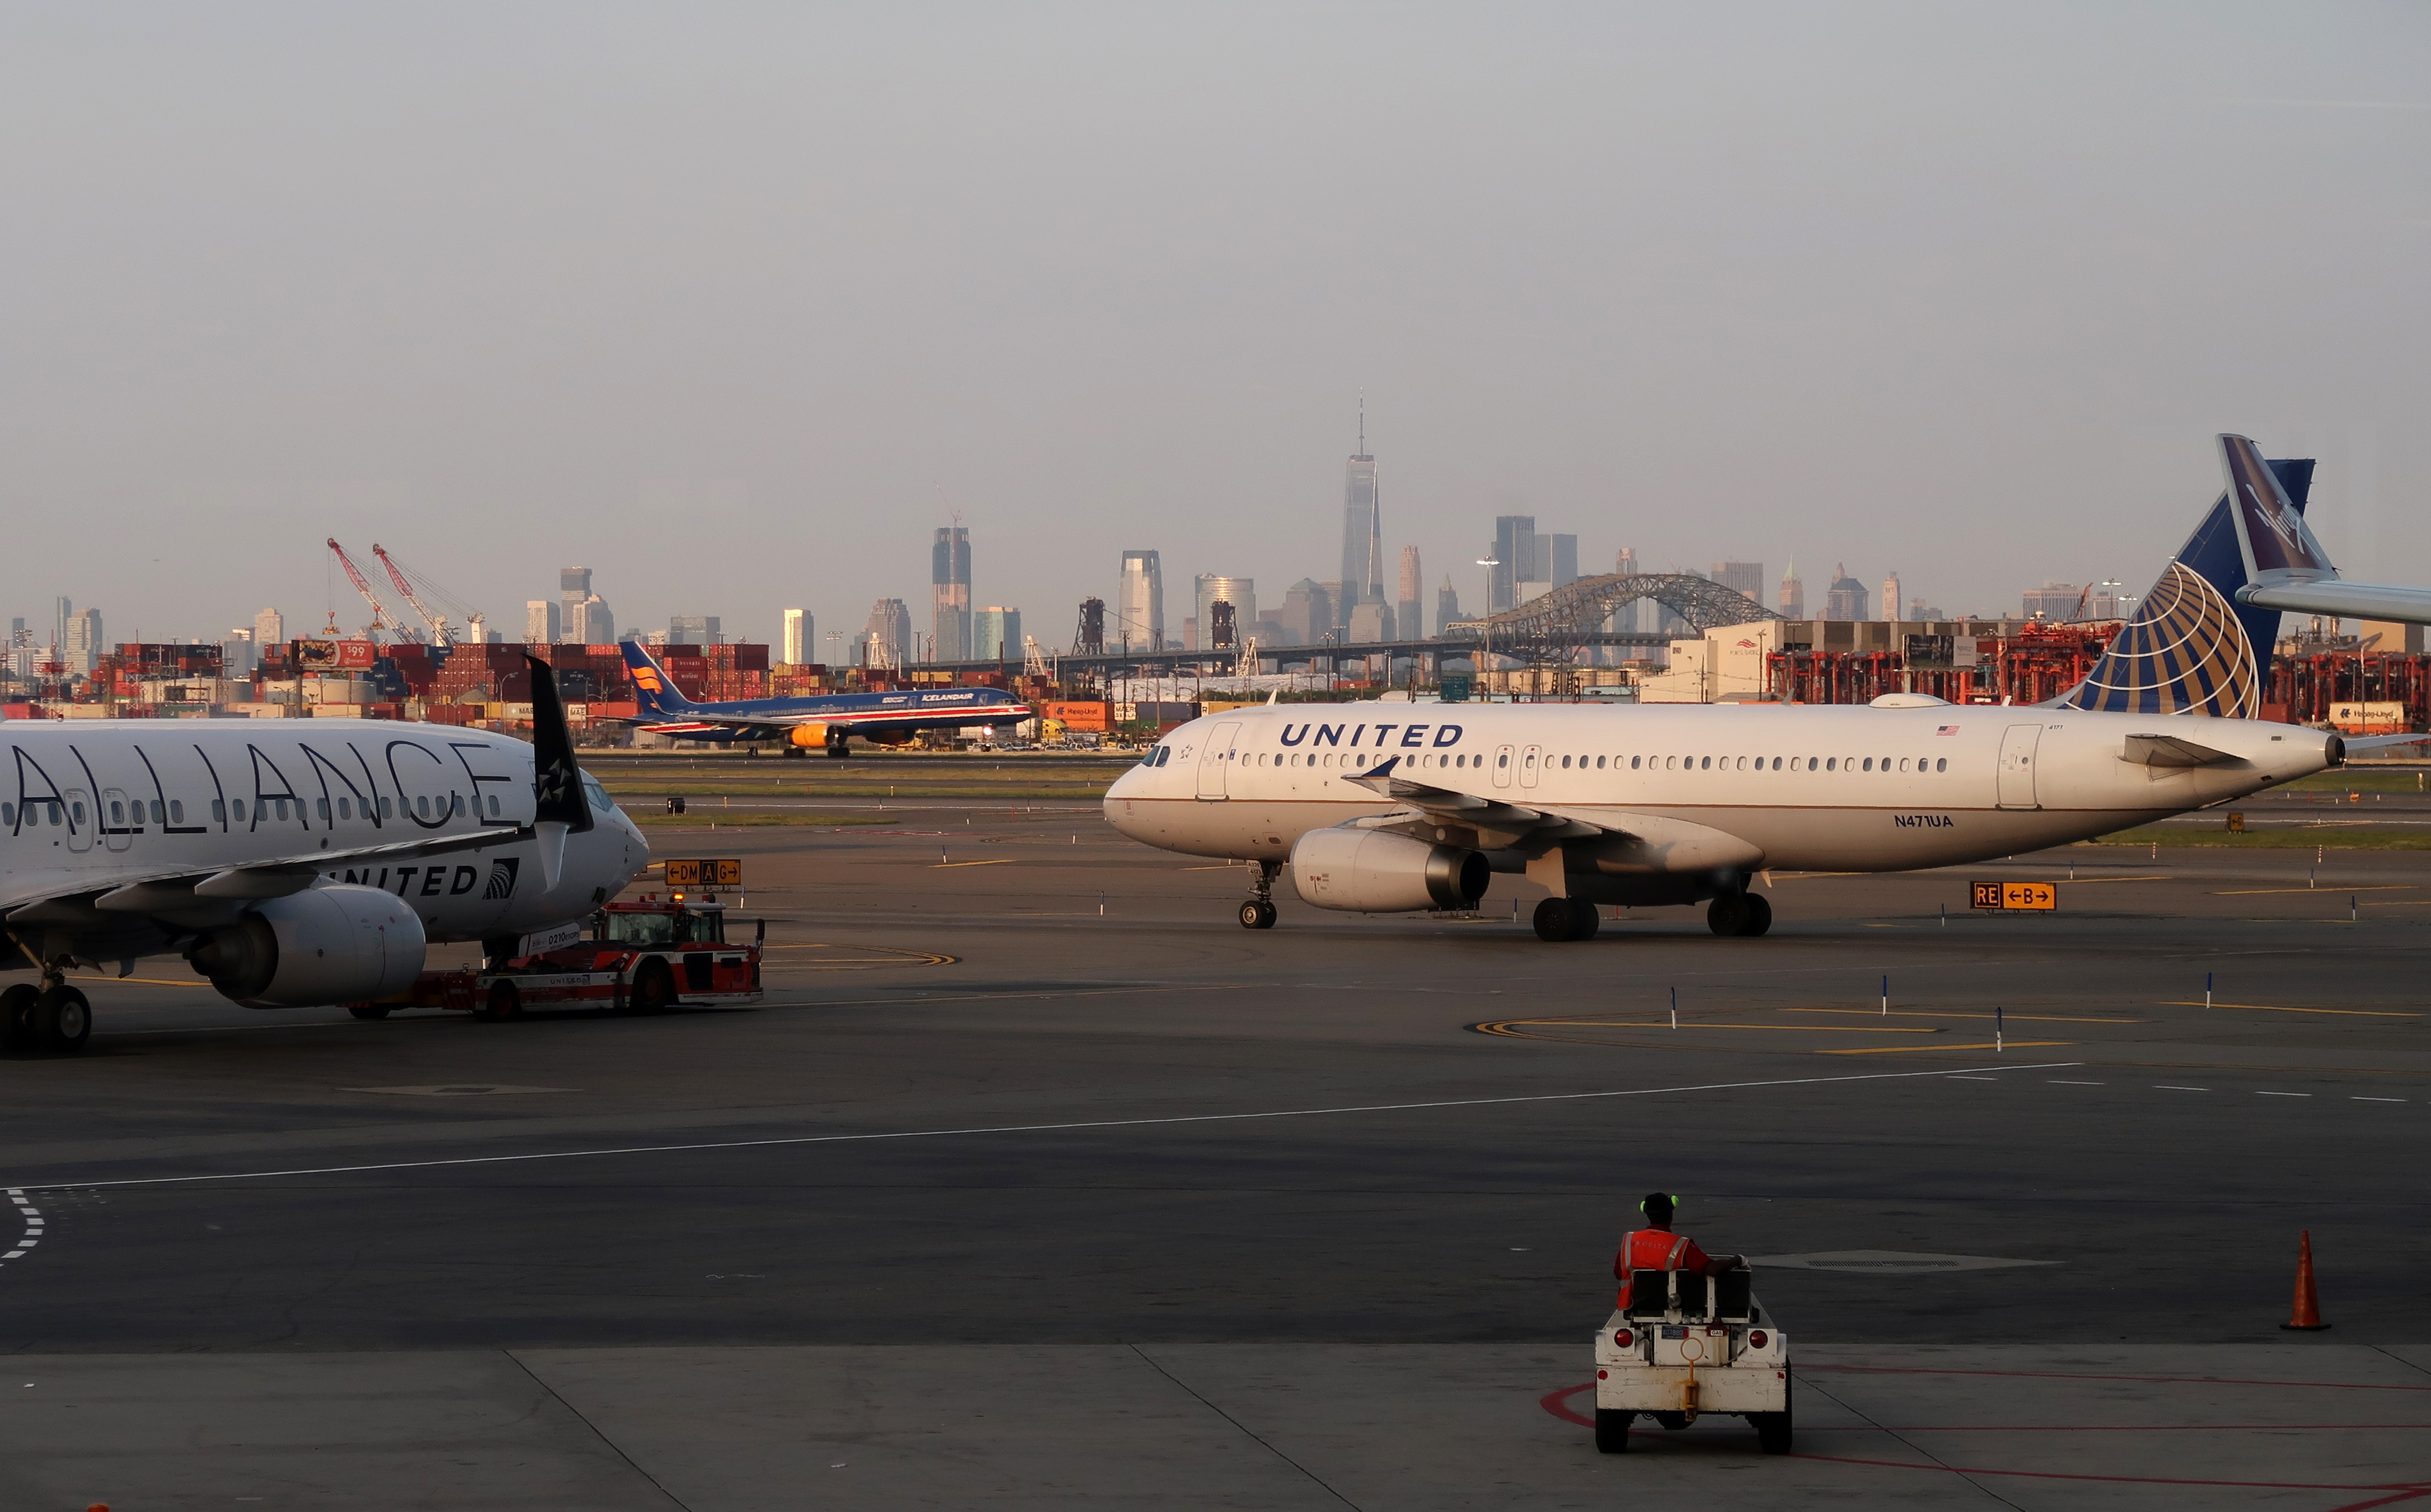 United Airlines Airplanes at Newark Liberty Airport